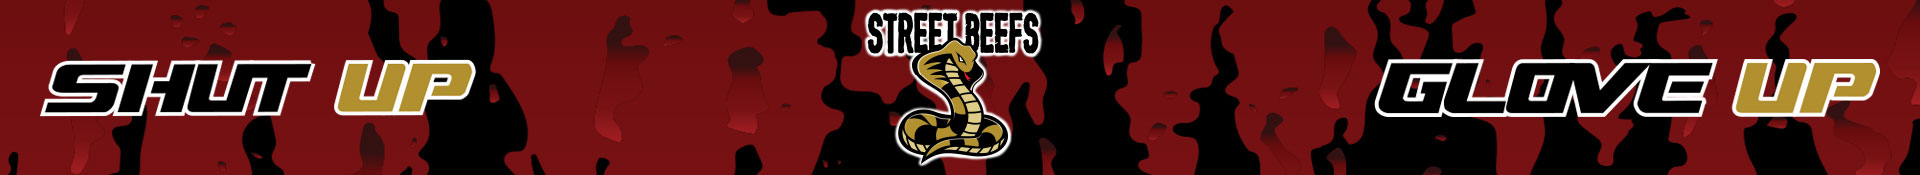 StreetBeefs Merch and Gear